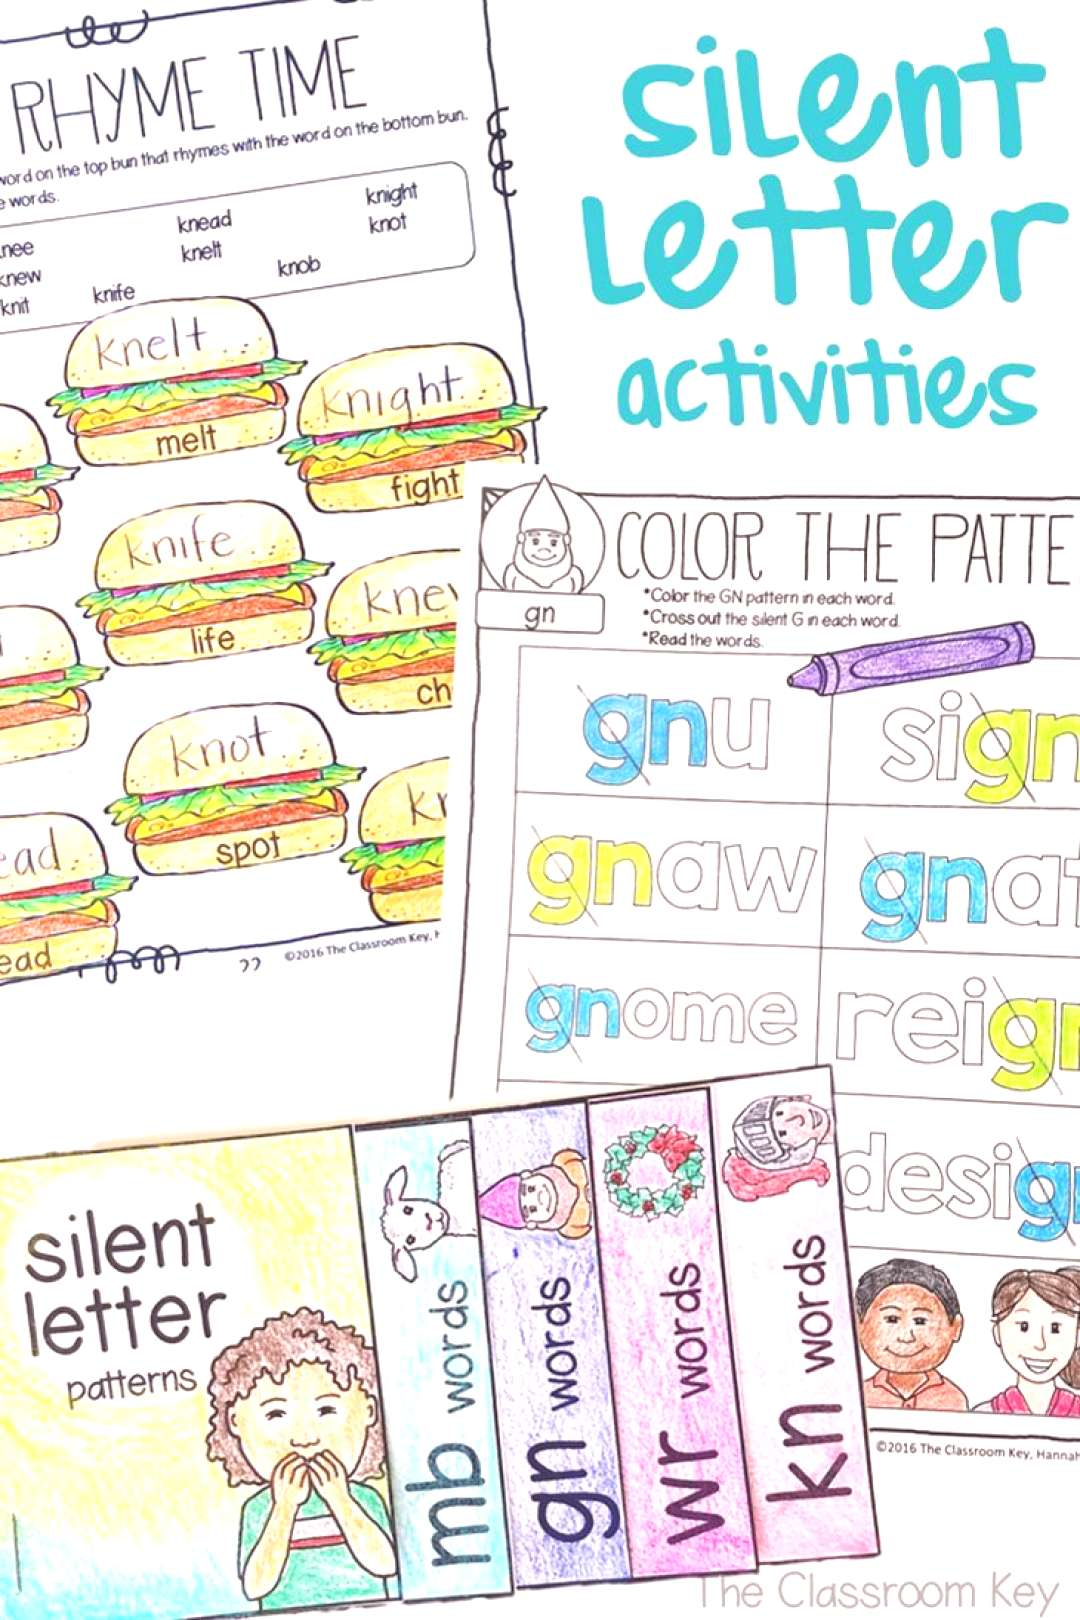 Silent Letter Activities amp Worksheets, kn, wr, mb, gn, 2nd Grade Phonics Silent Letter Activities (